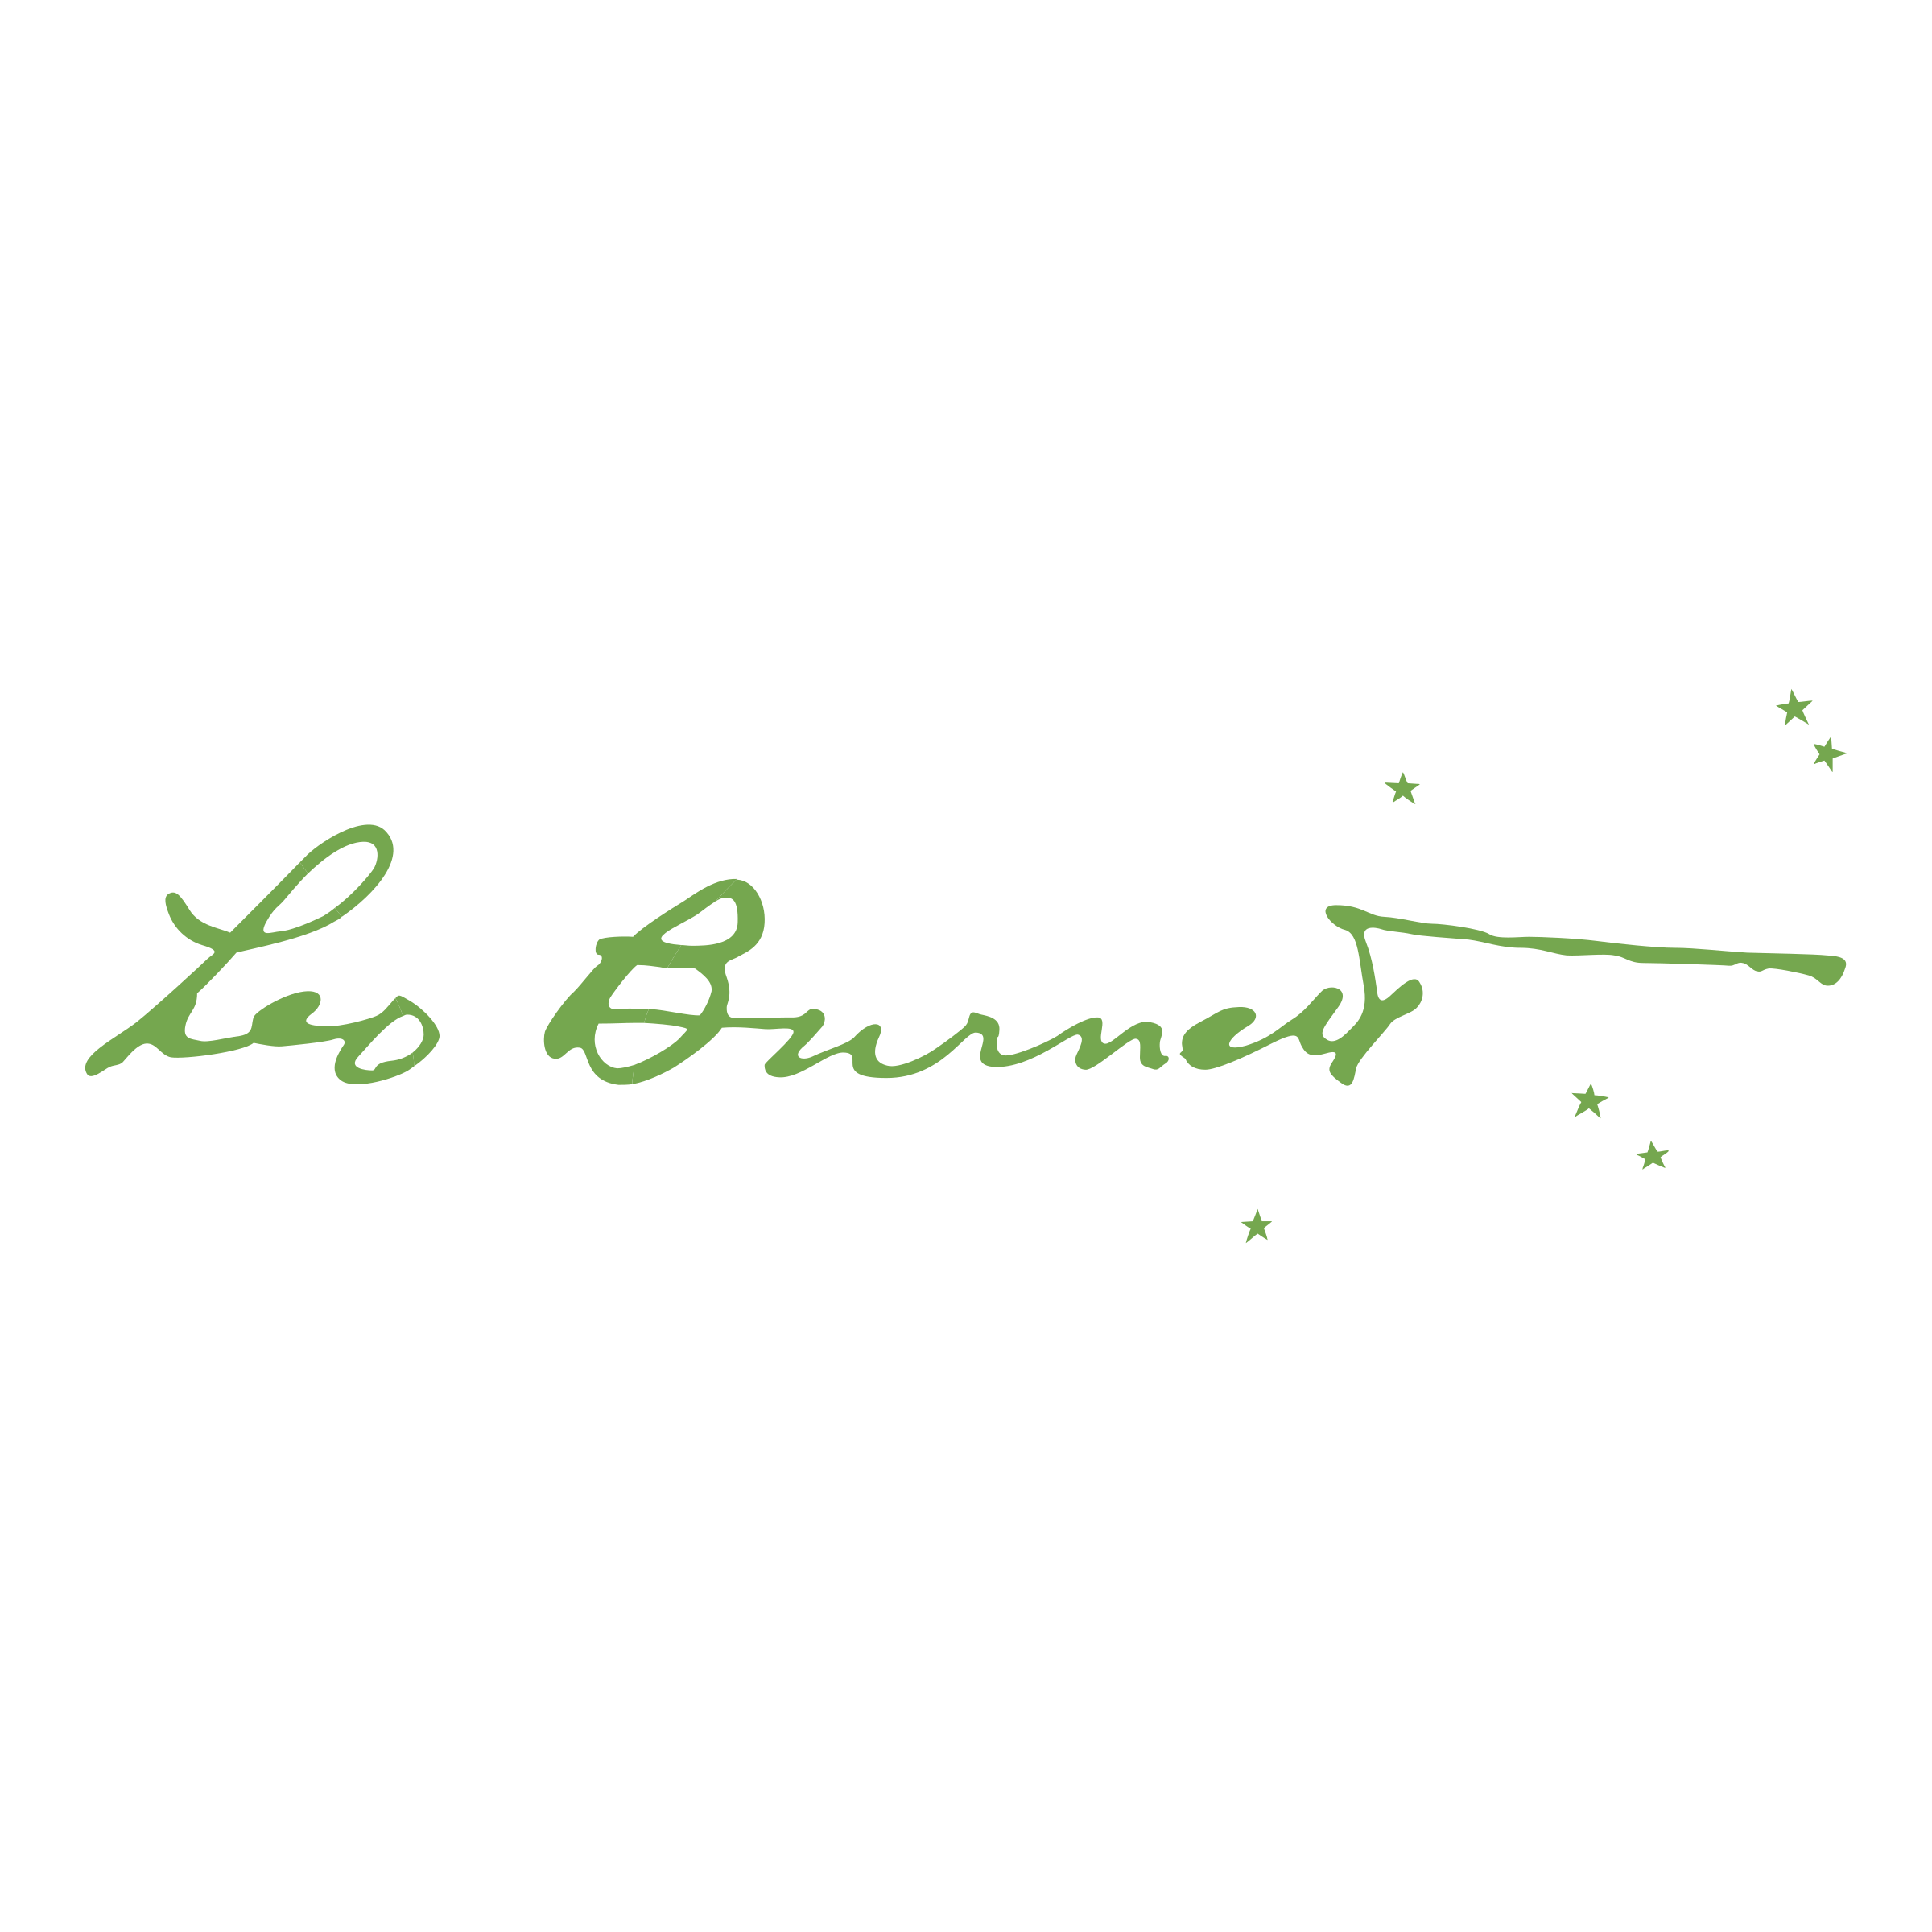 leo-burnett-logo-png-transparent